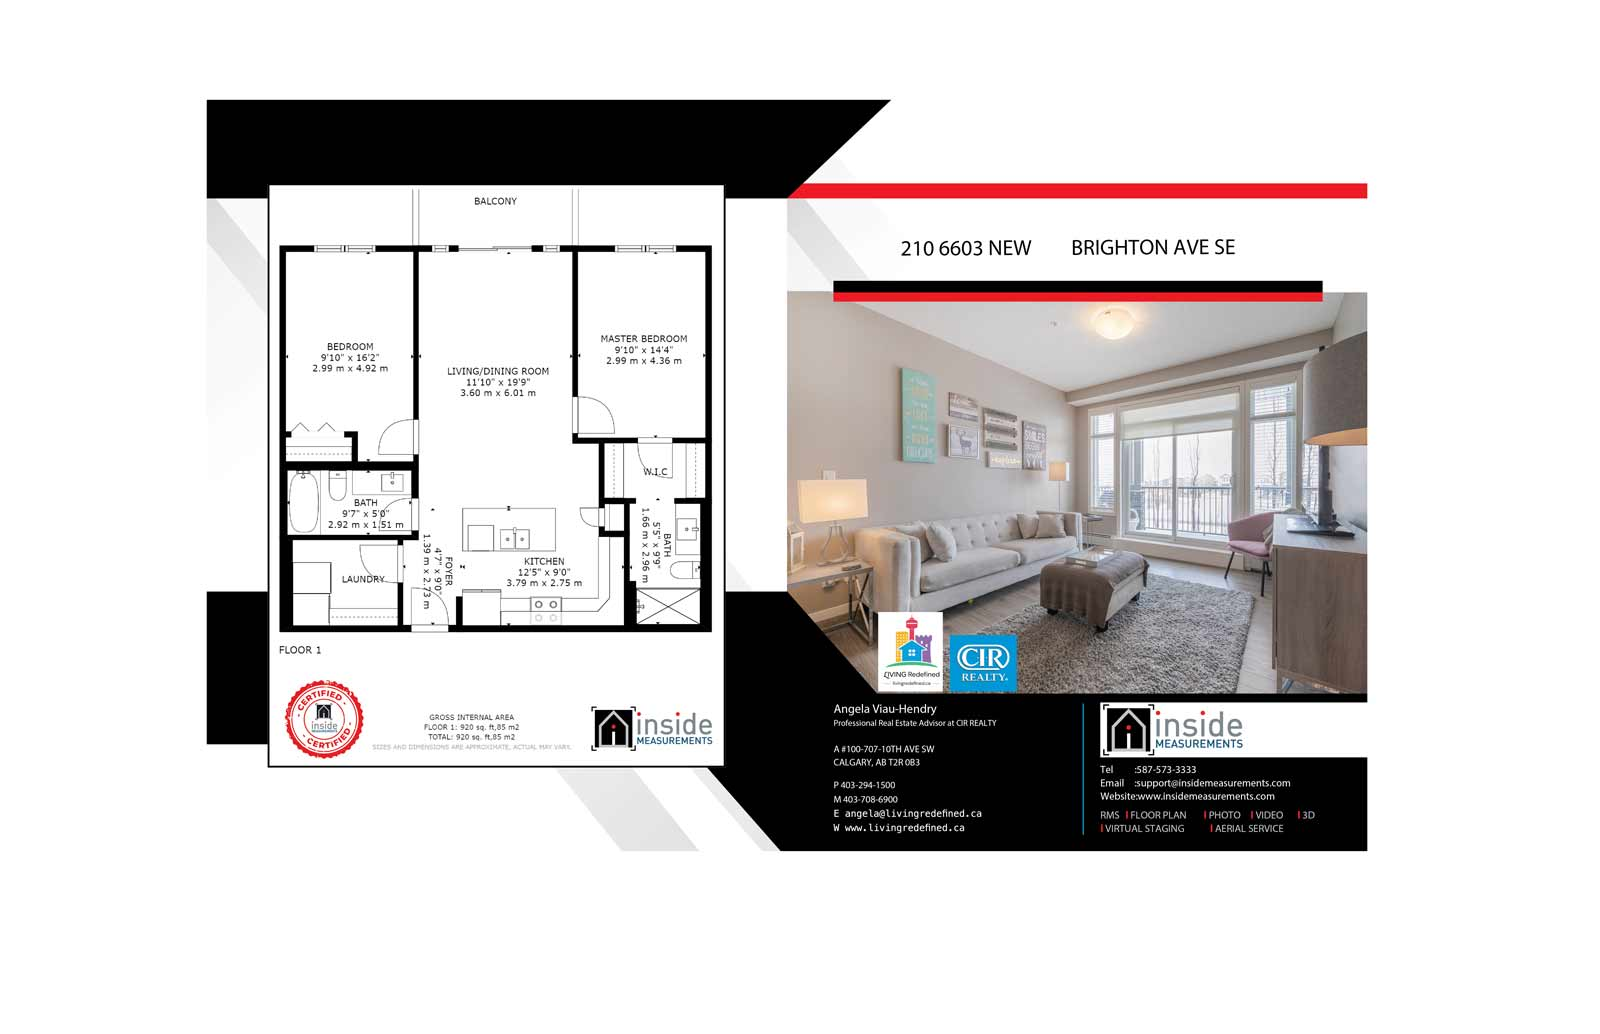 Residential Rms services in Edmonton